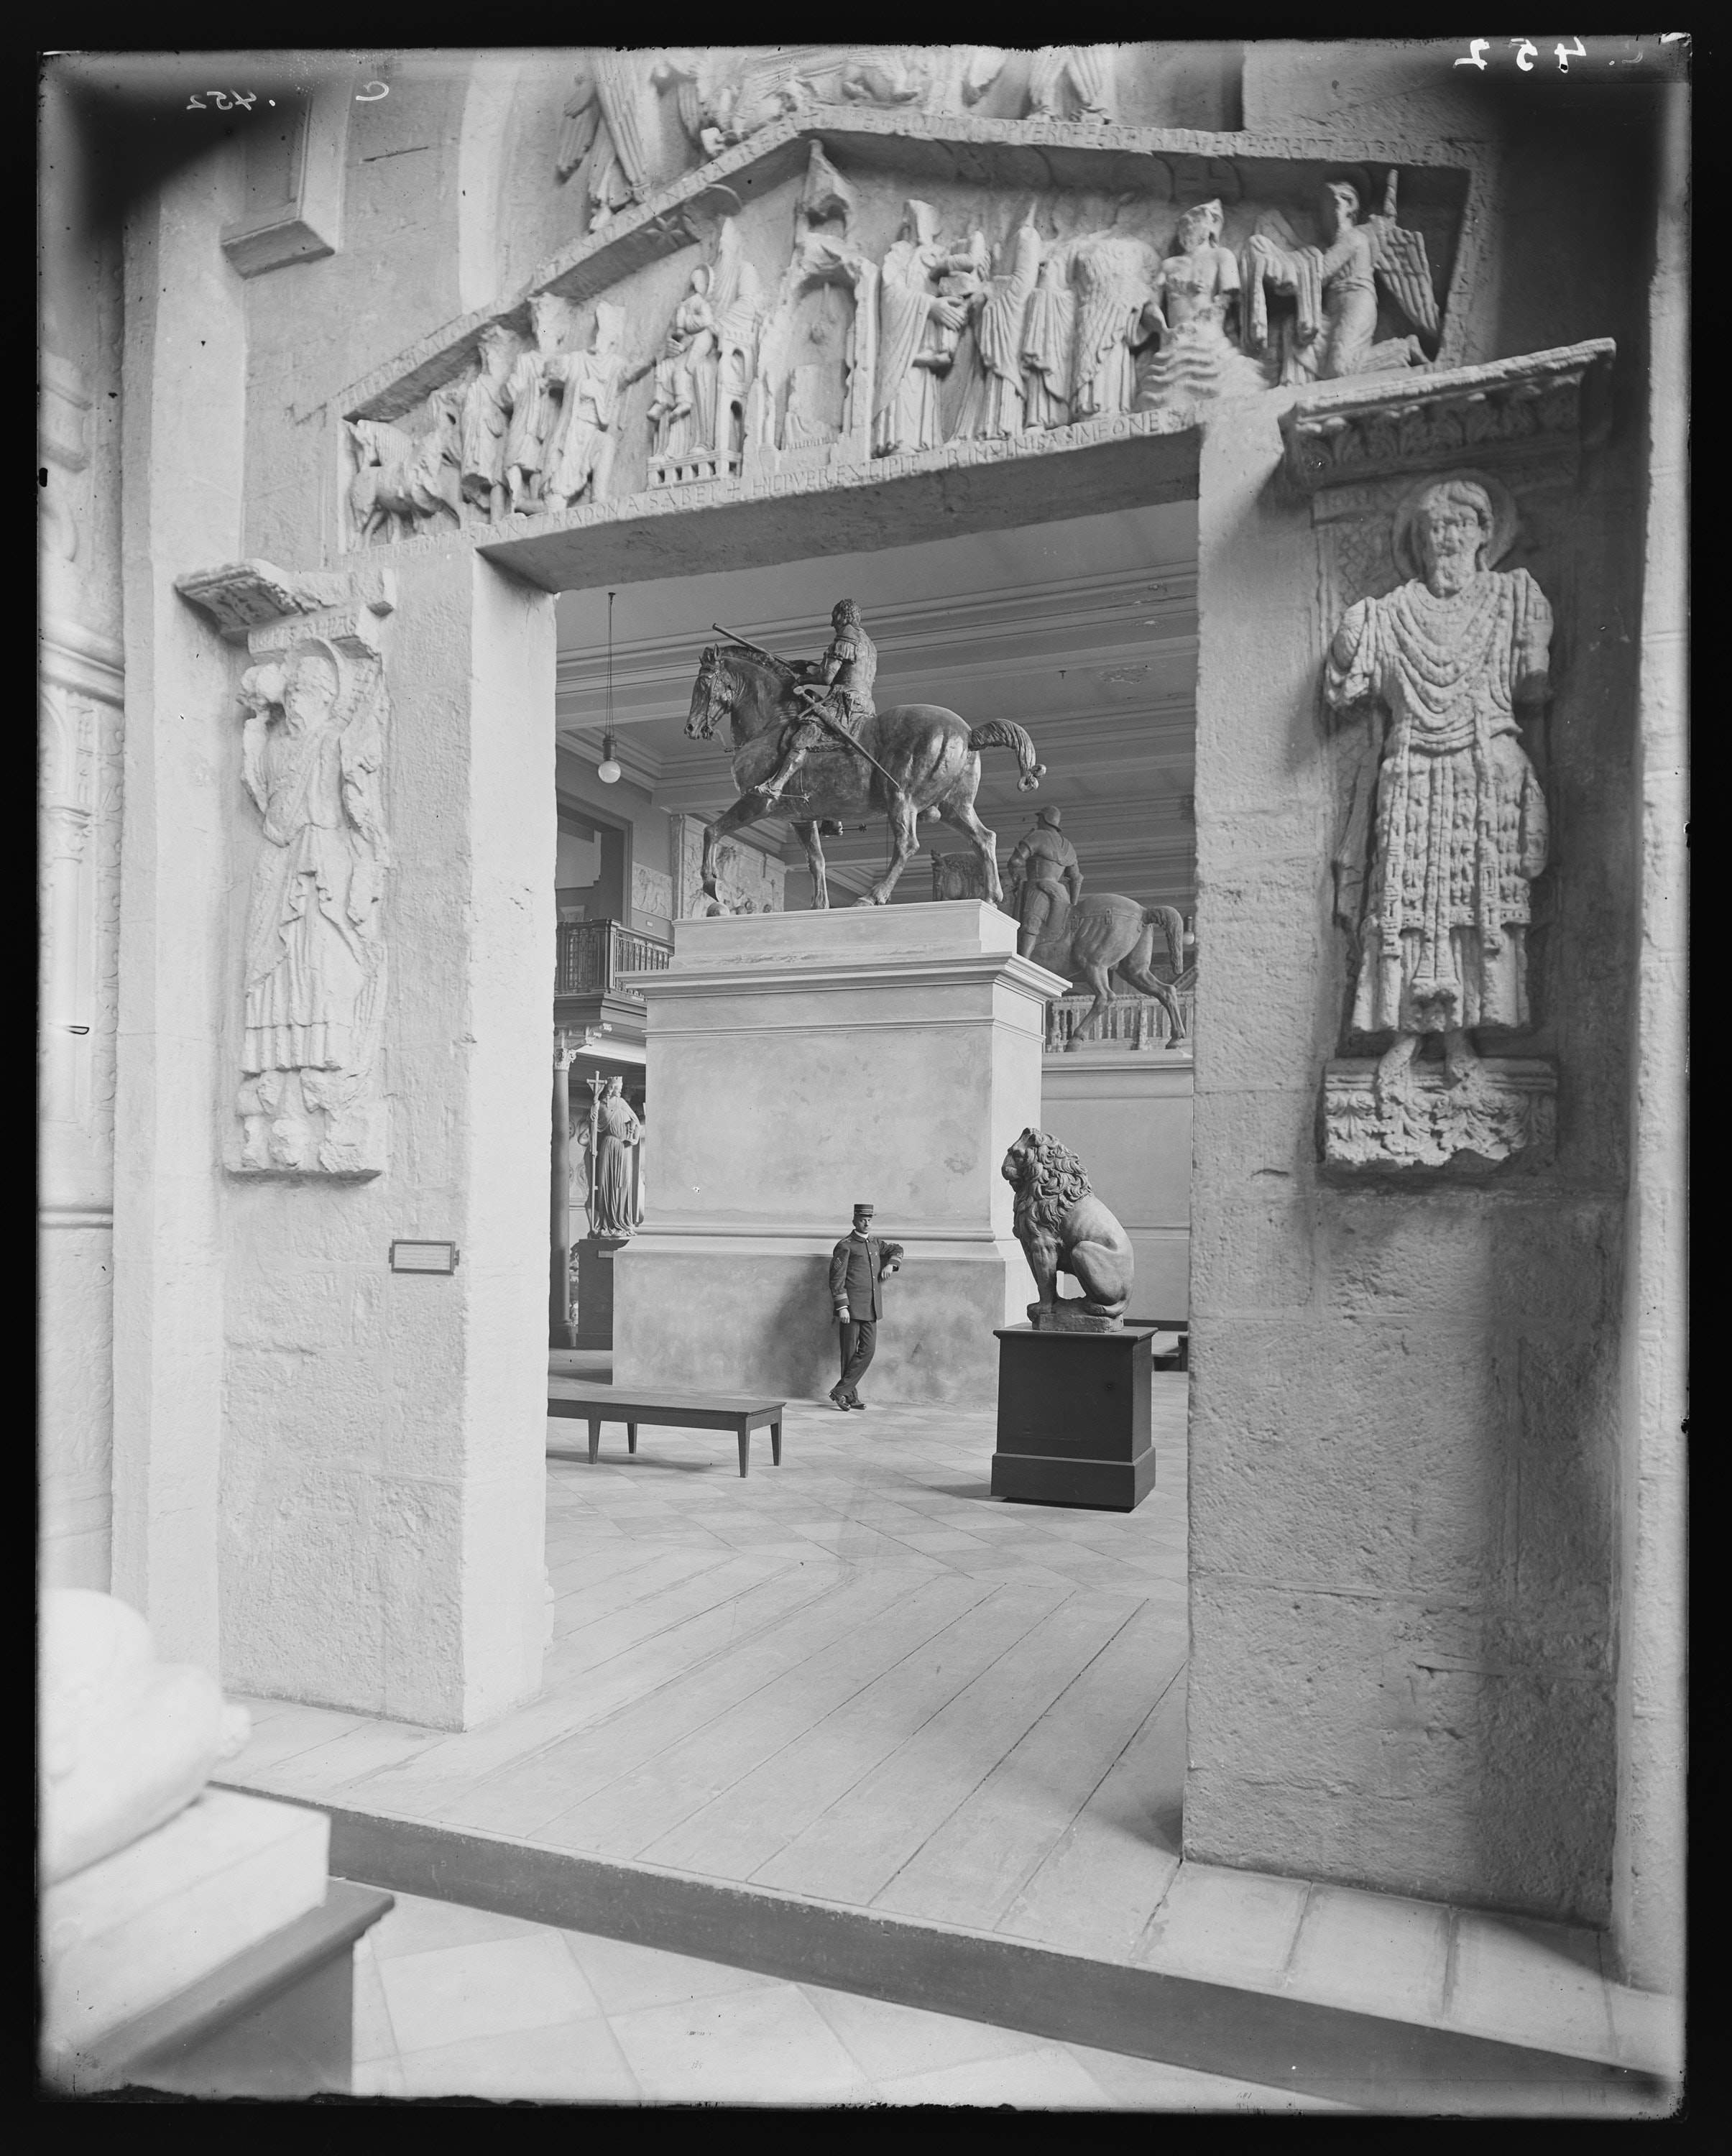 Old photo of guard on duty in galleries